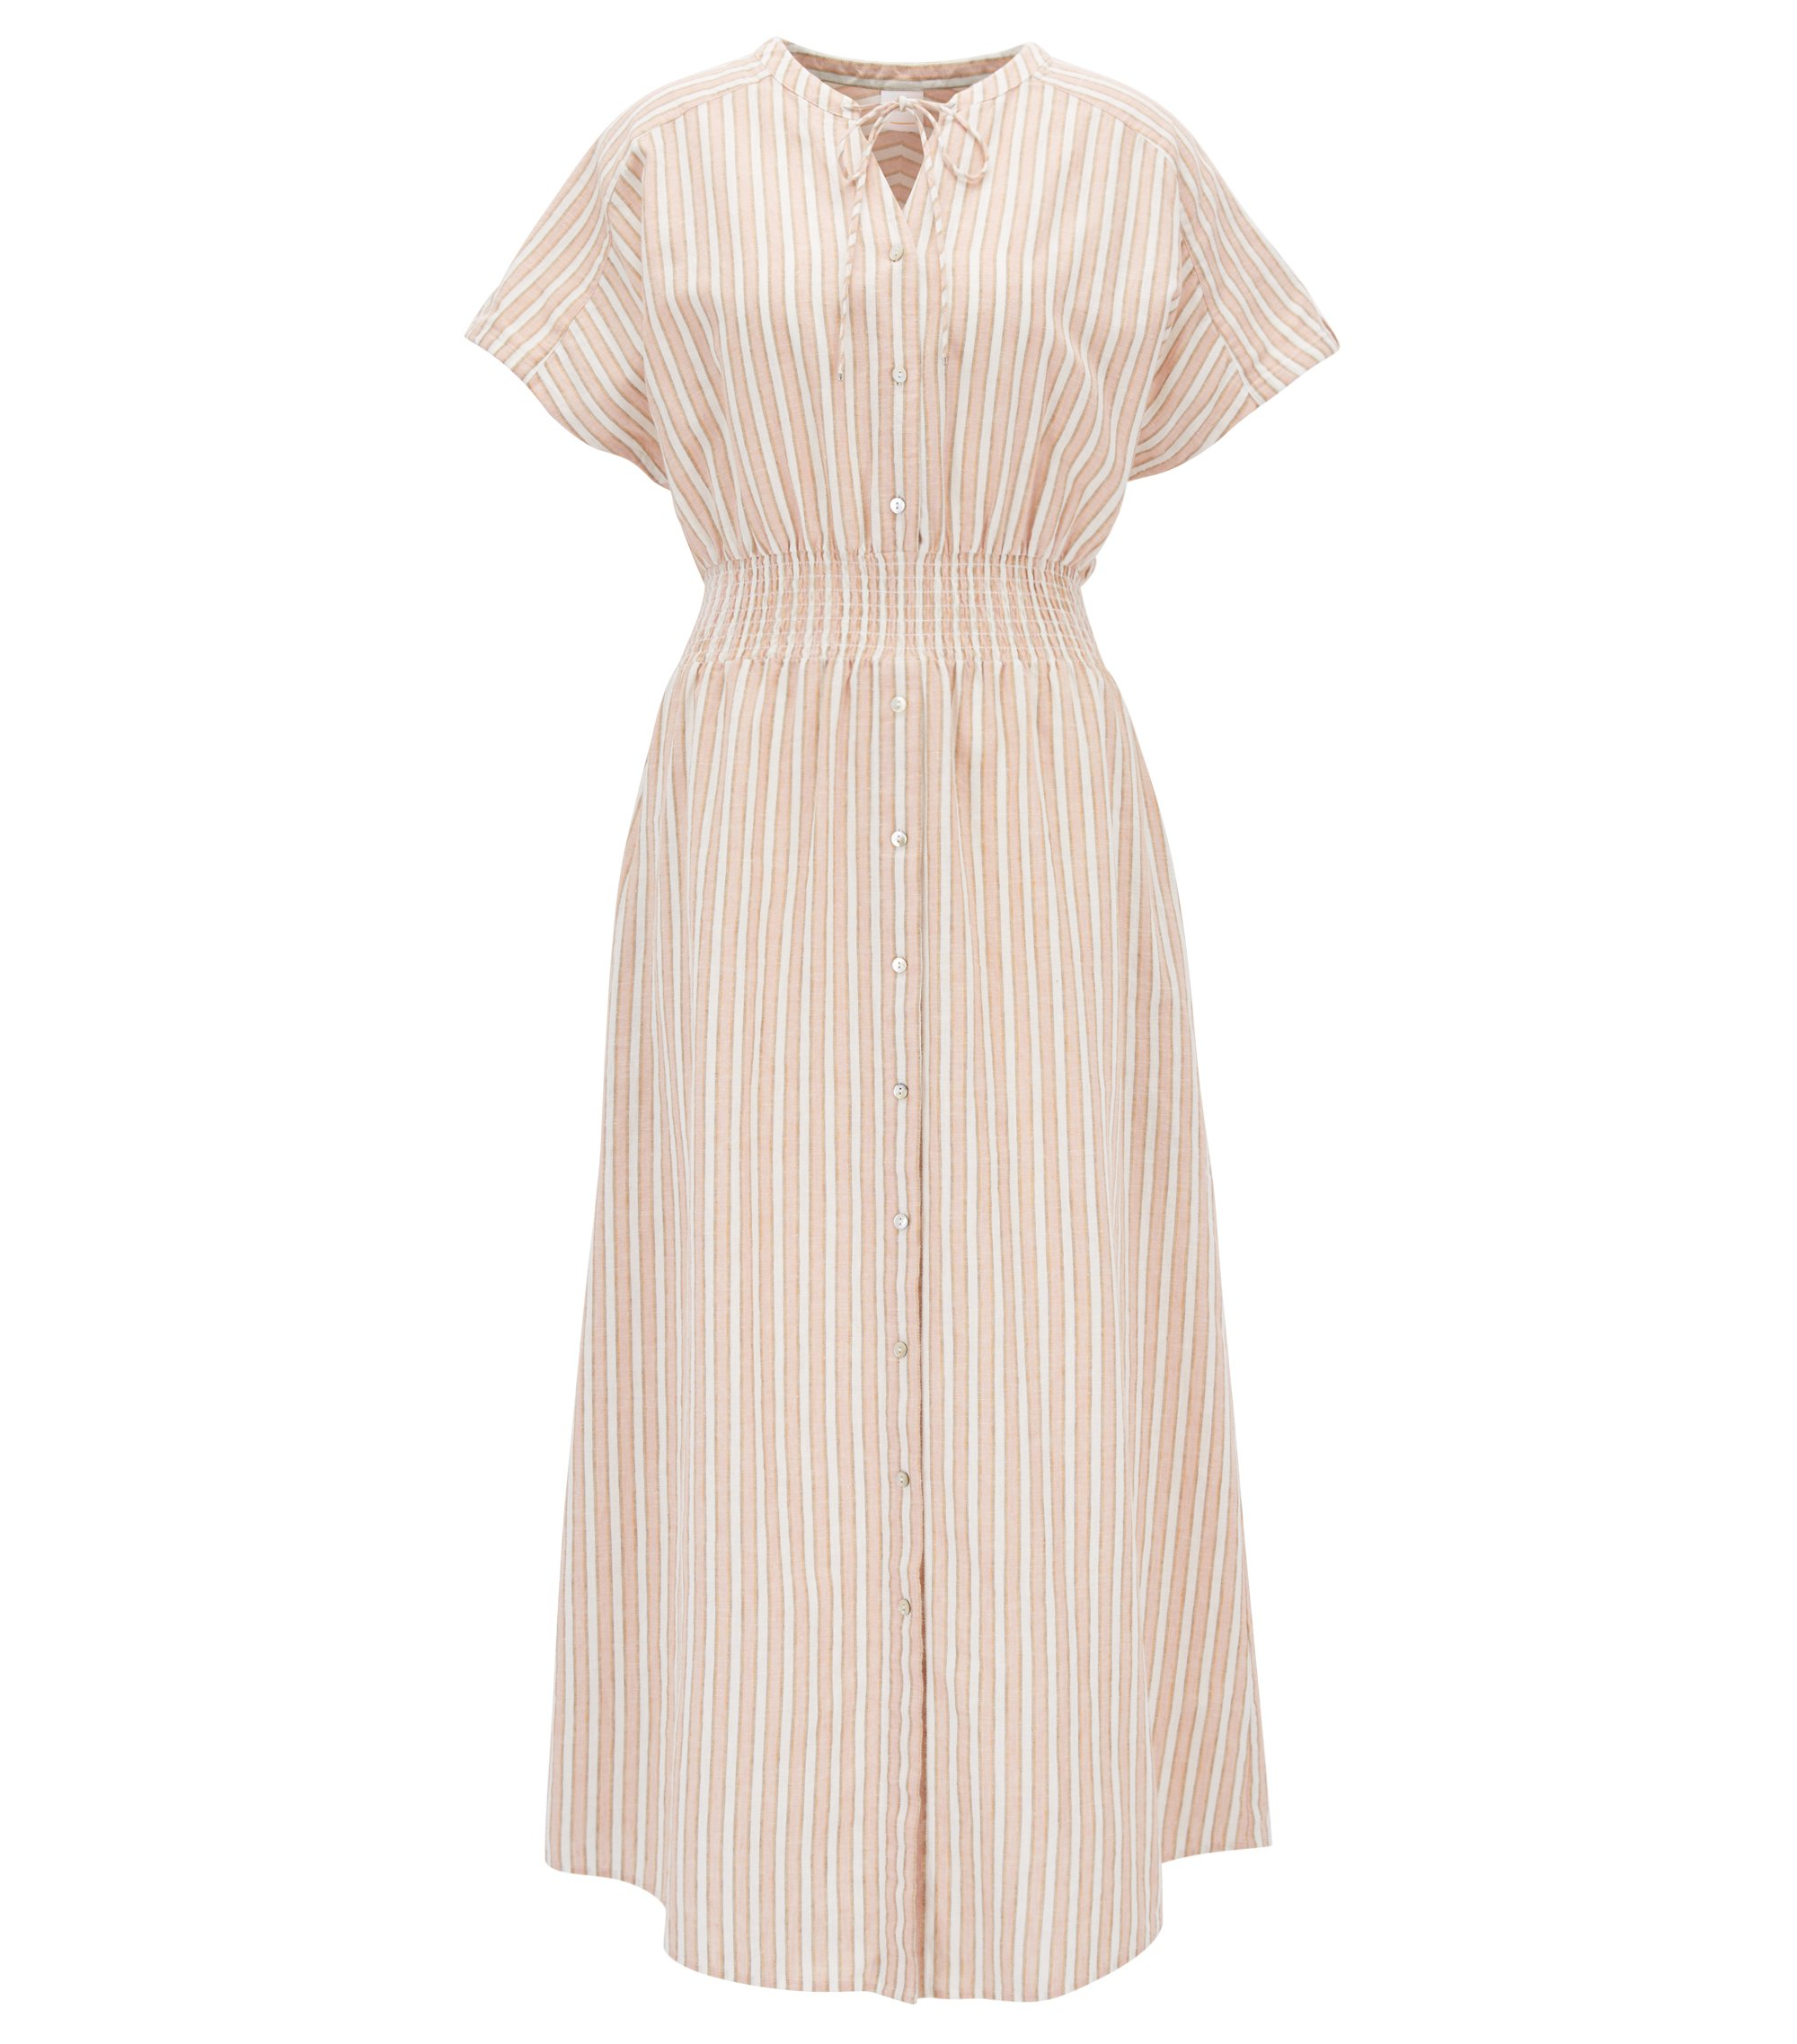 Linen-blend striped dress with smocked waist, light pink